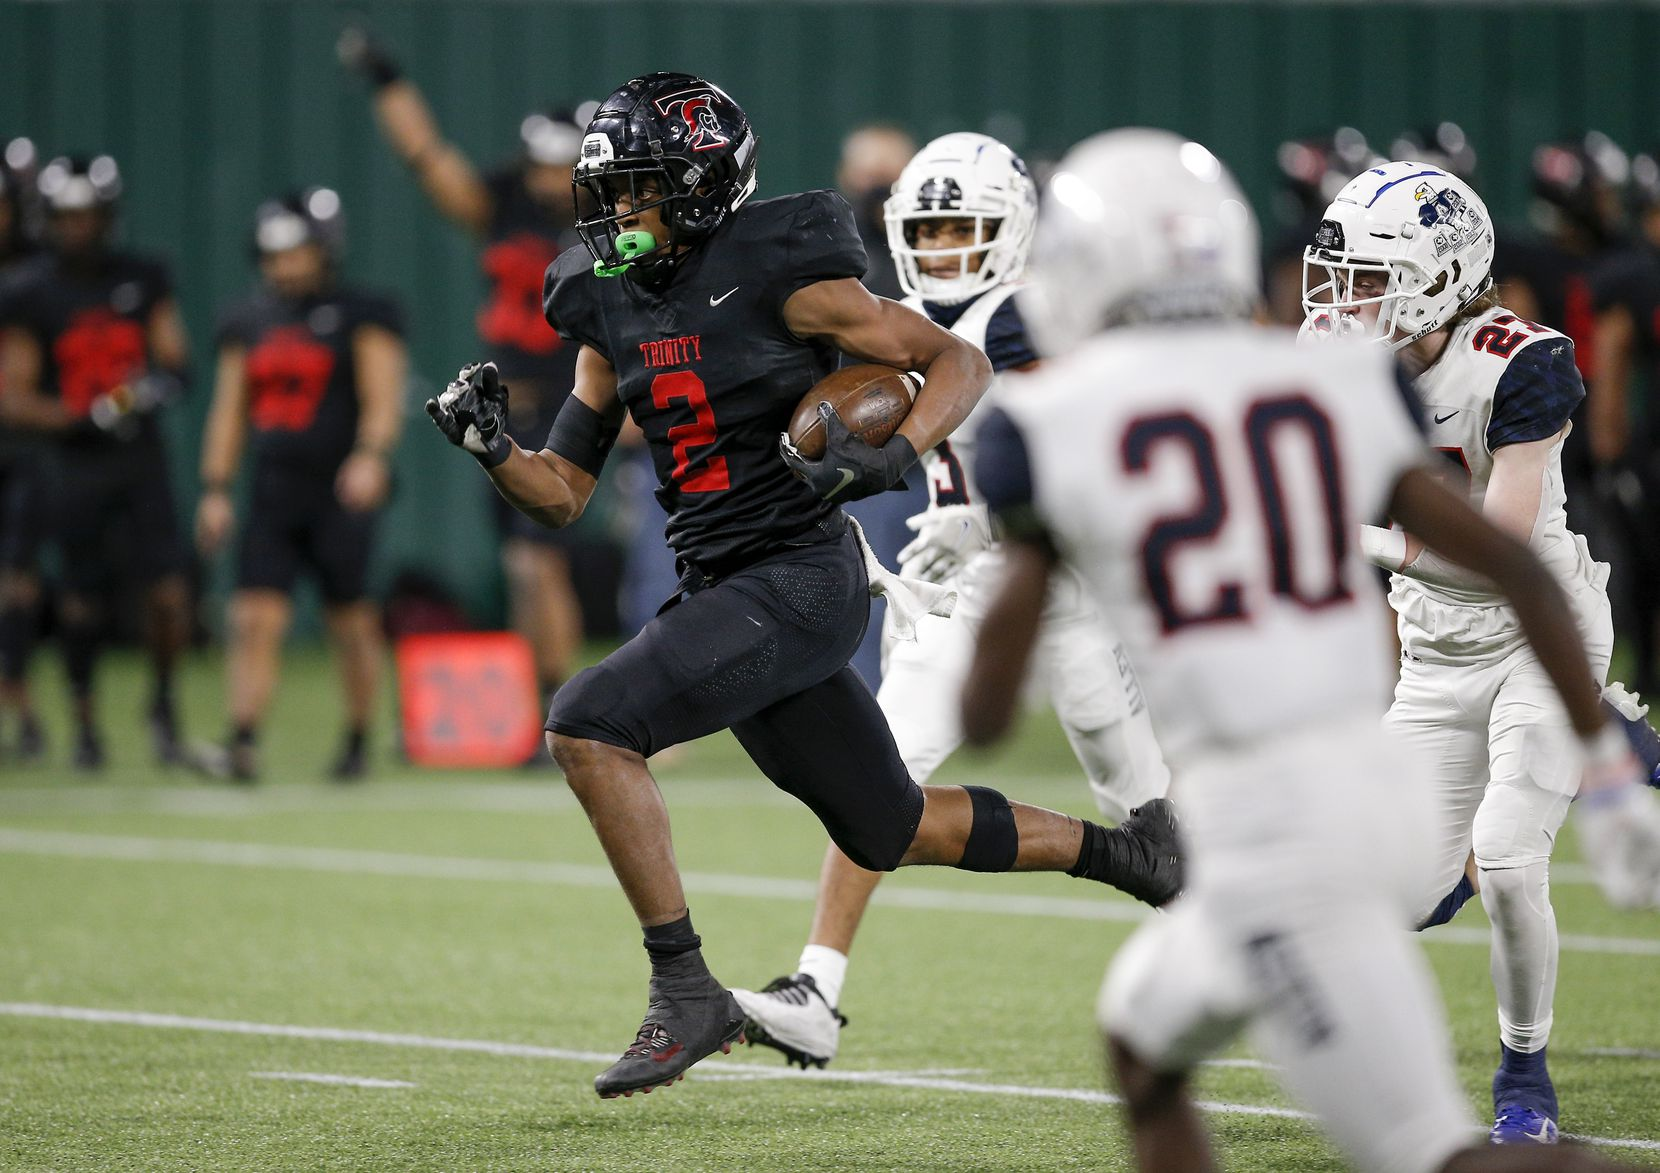 Euless Trinity junior running back Ollie Gordon (2) breaks past the Allen defense to score a touchdown during the second half of a high school Class 6A Division I Region I semifinal football game at Globe Life Park in Arlington, Saturday, December 26, 2020. Trinity won 49-45. (Brandon Wade/Special Contributor)